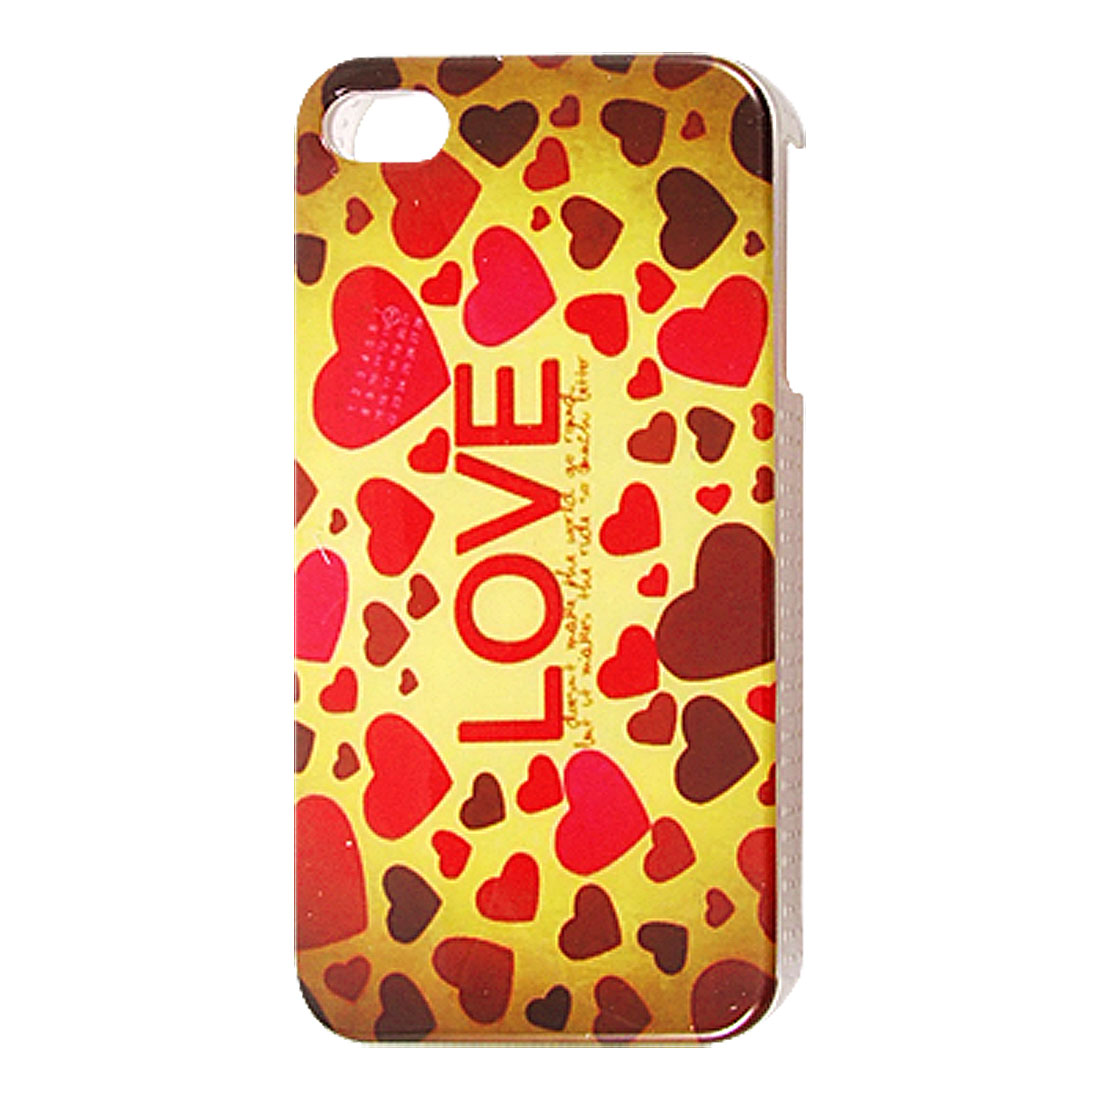 Red IMD Heart Print Hard Plastic Back Case for iPhone 4 4G 4S